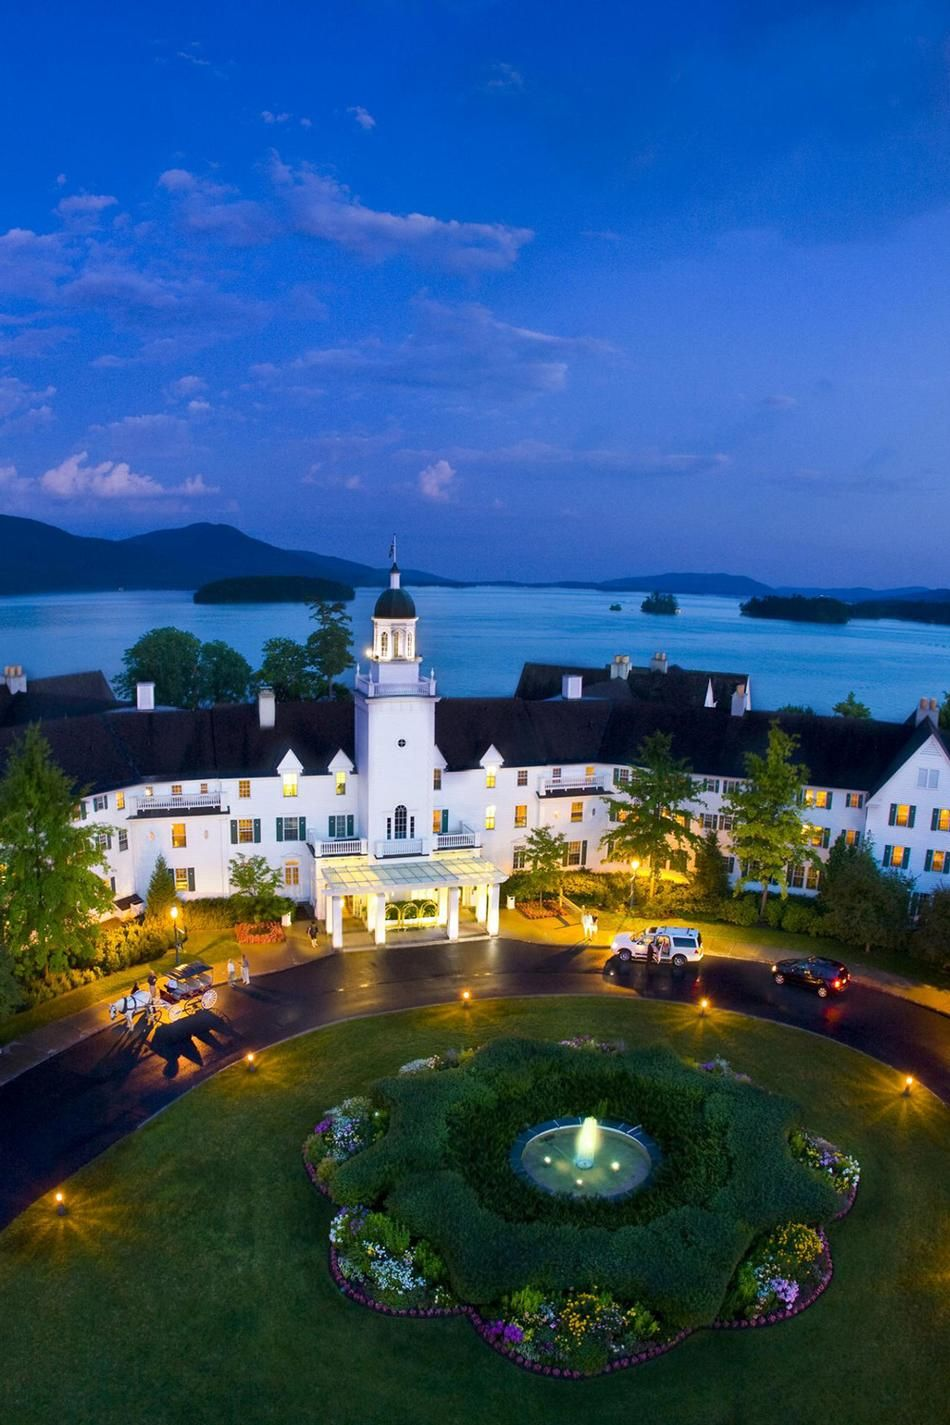 The Sagamore Is A 350 Room Resort Situated On A Private 70